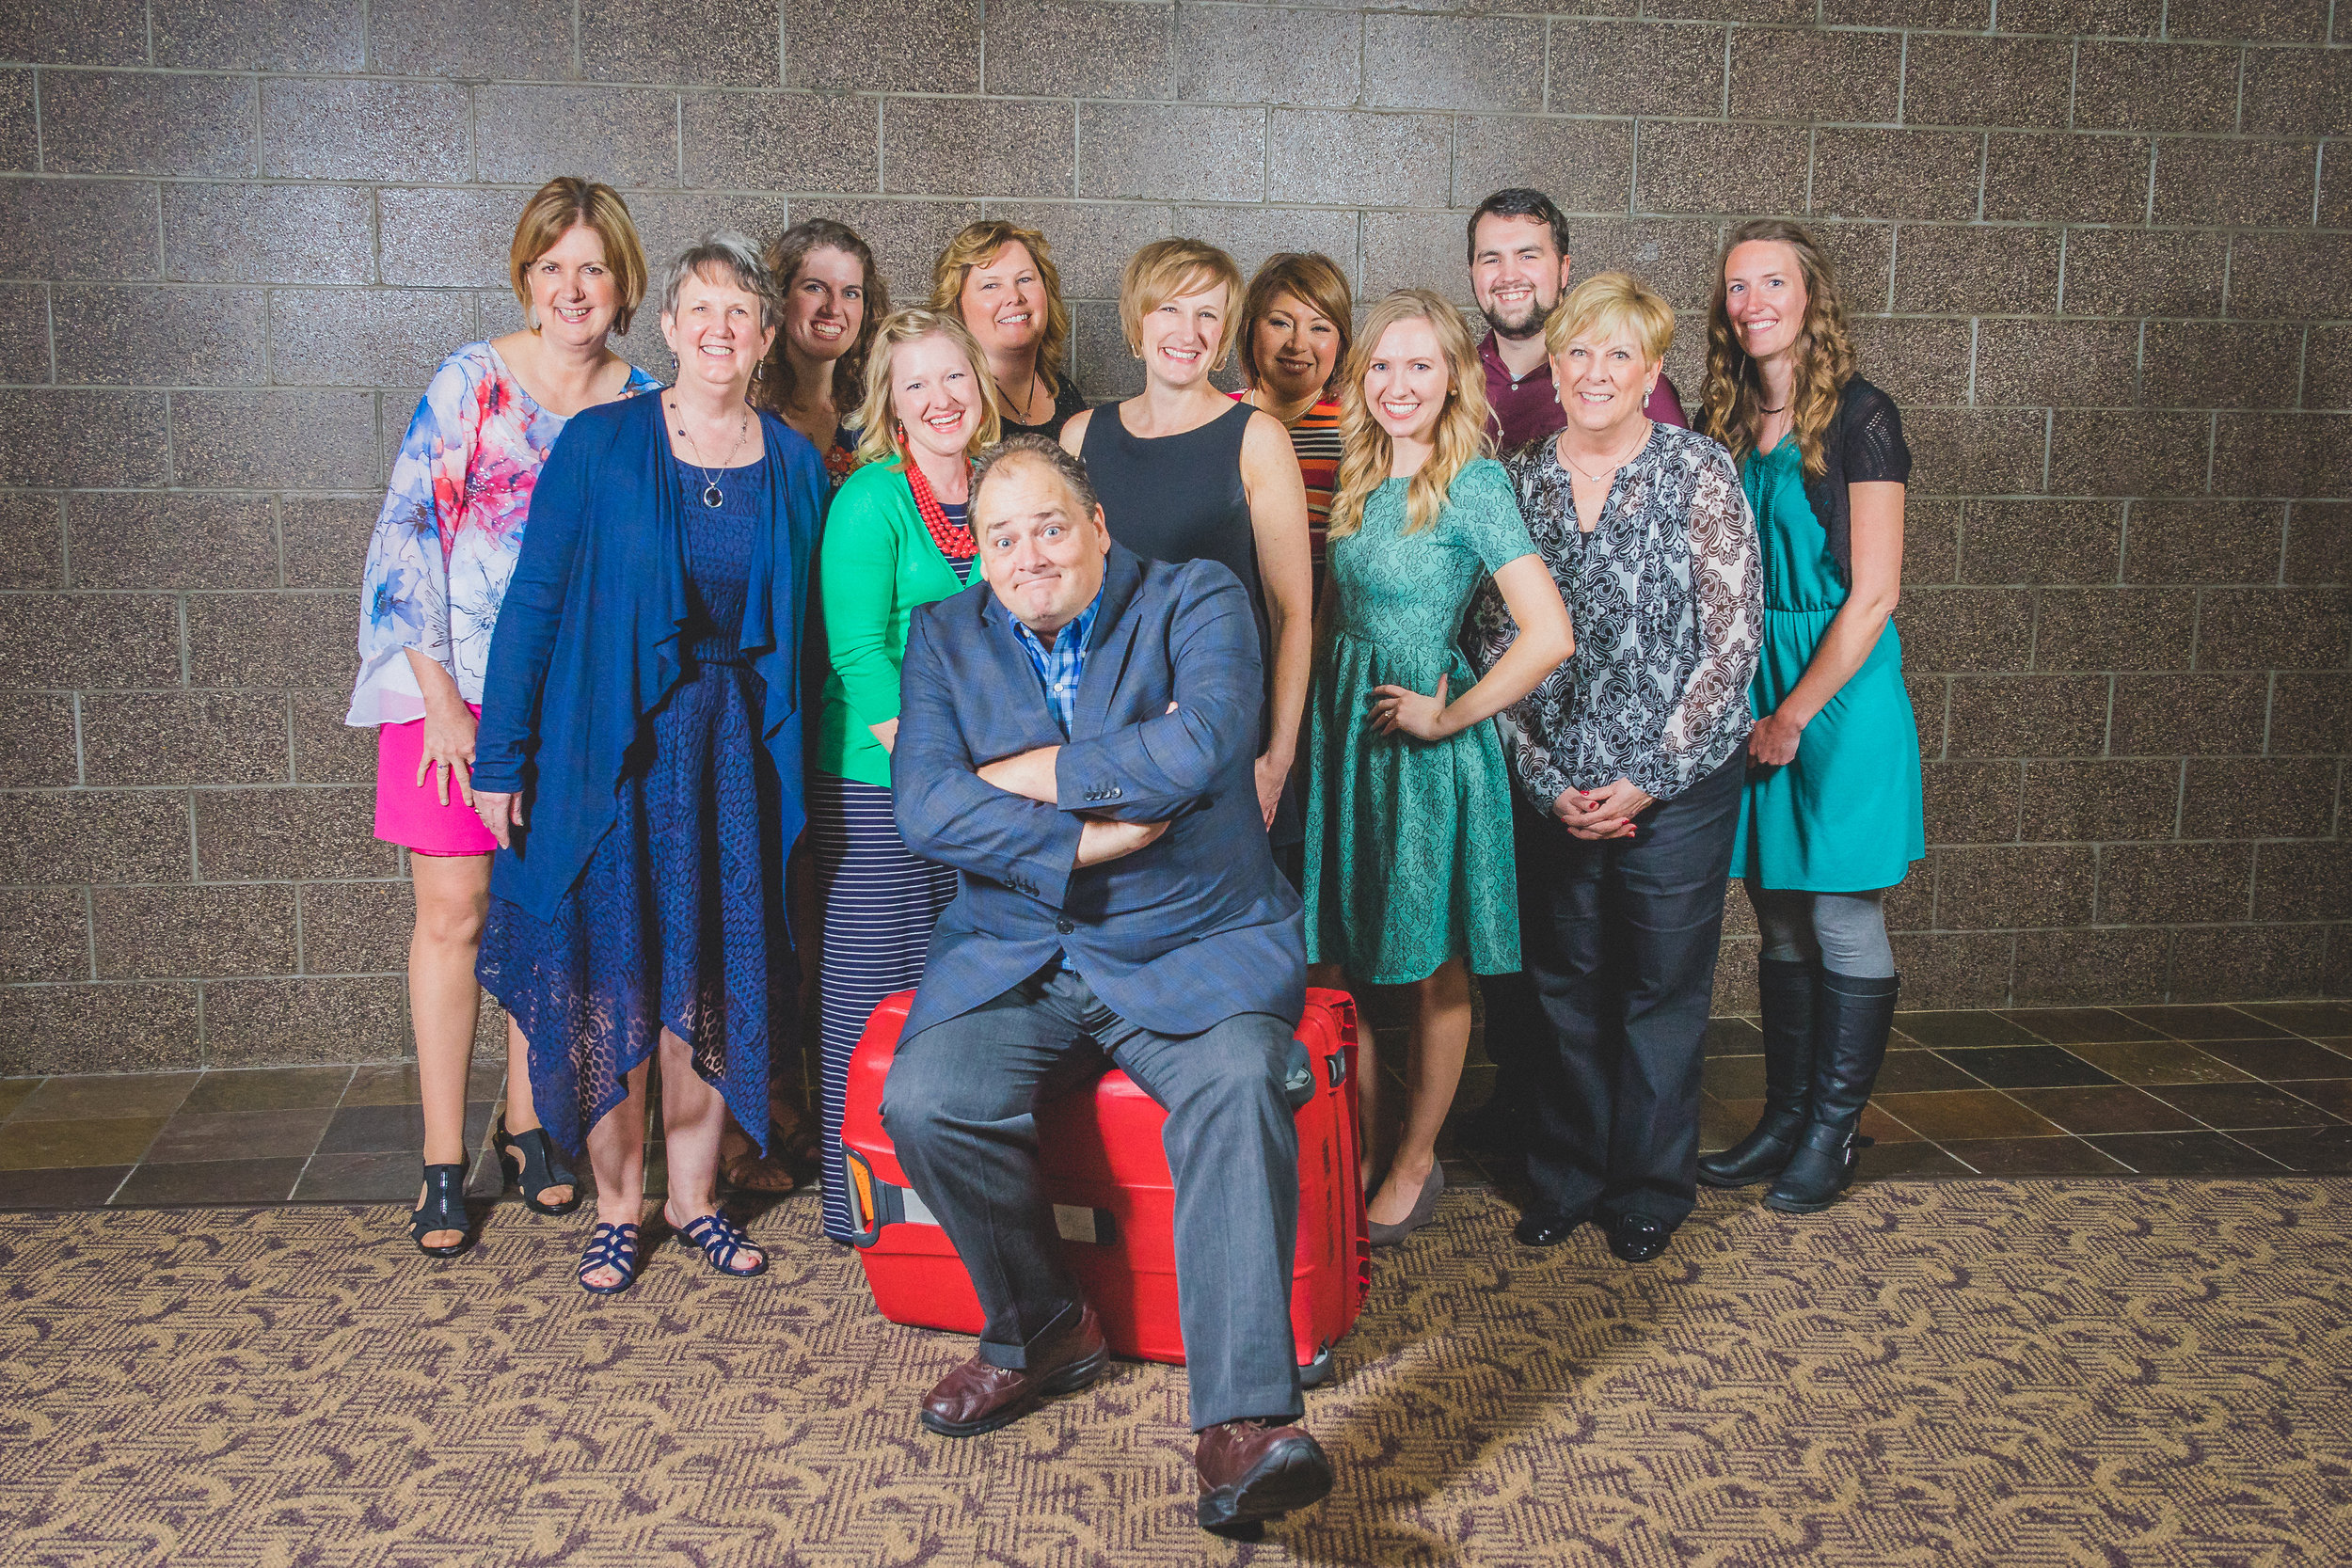 professional event photography tricities